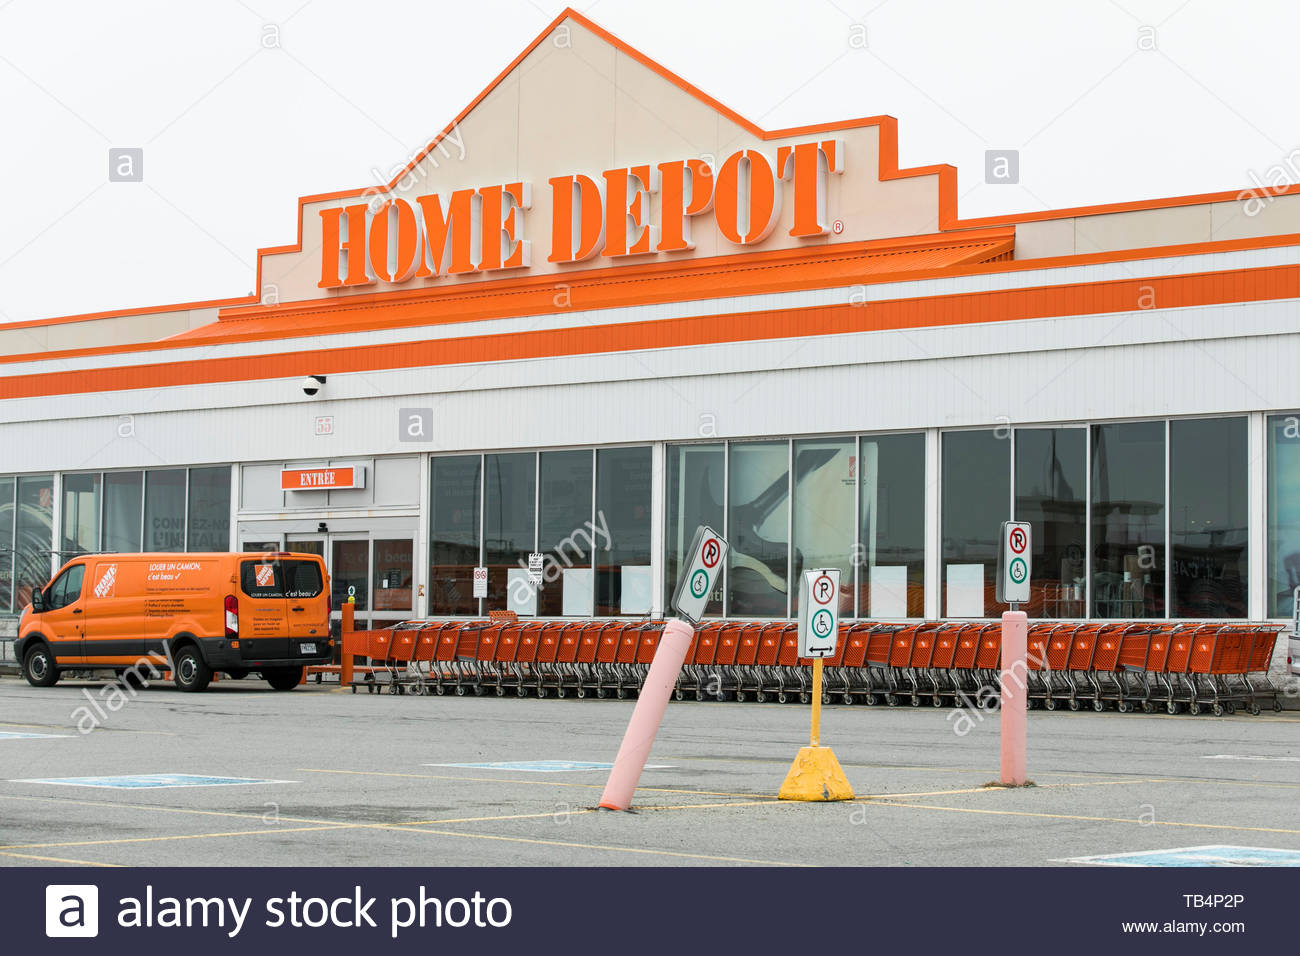 a logo sign outside of a home depot retail store location in vaudreuil dorion quebec canada on april 21 2019 TB4P2P